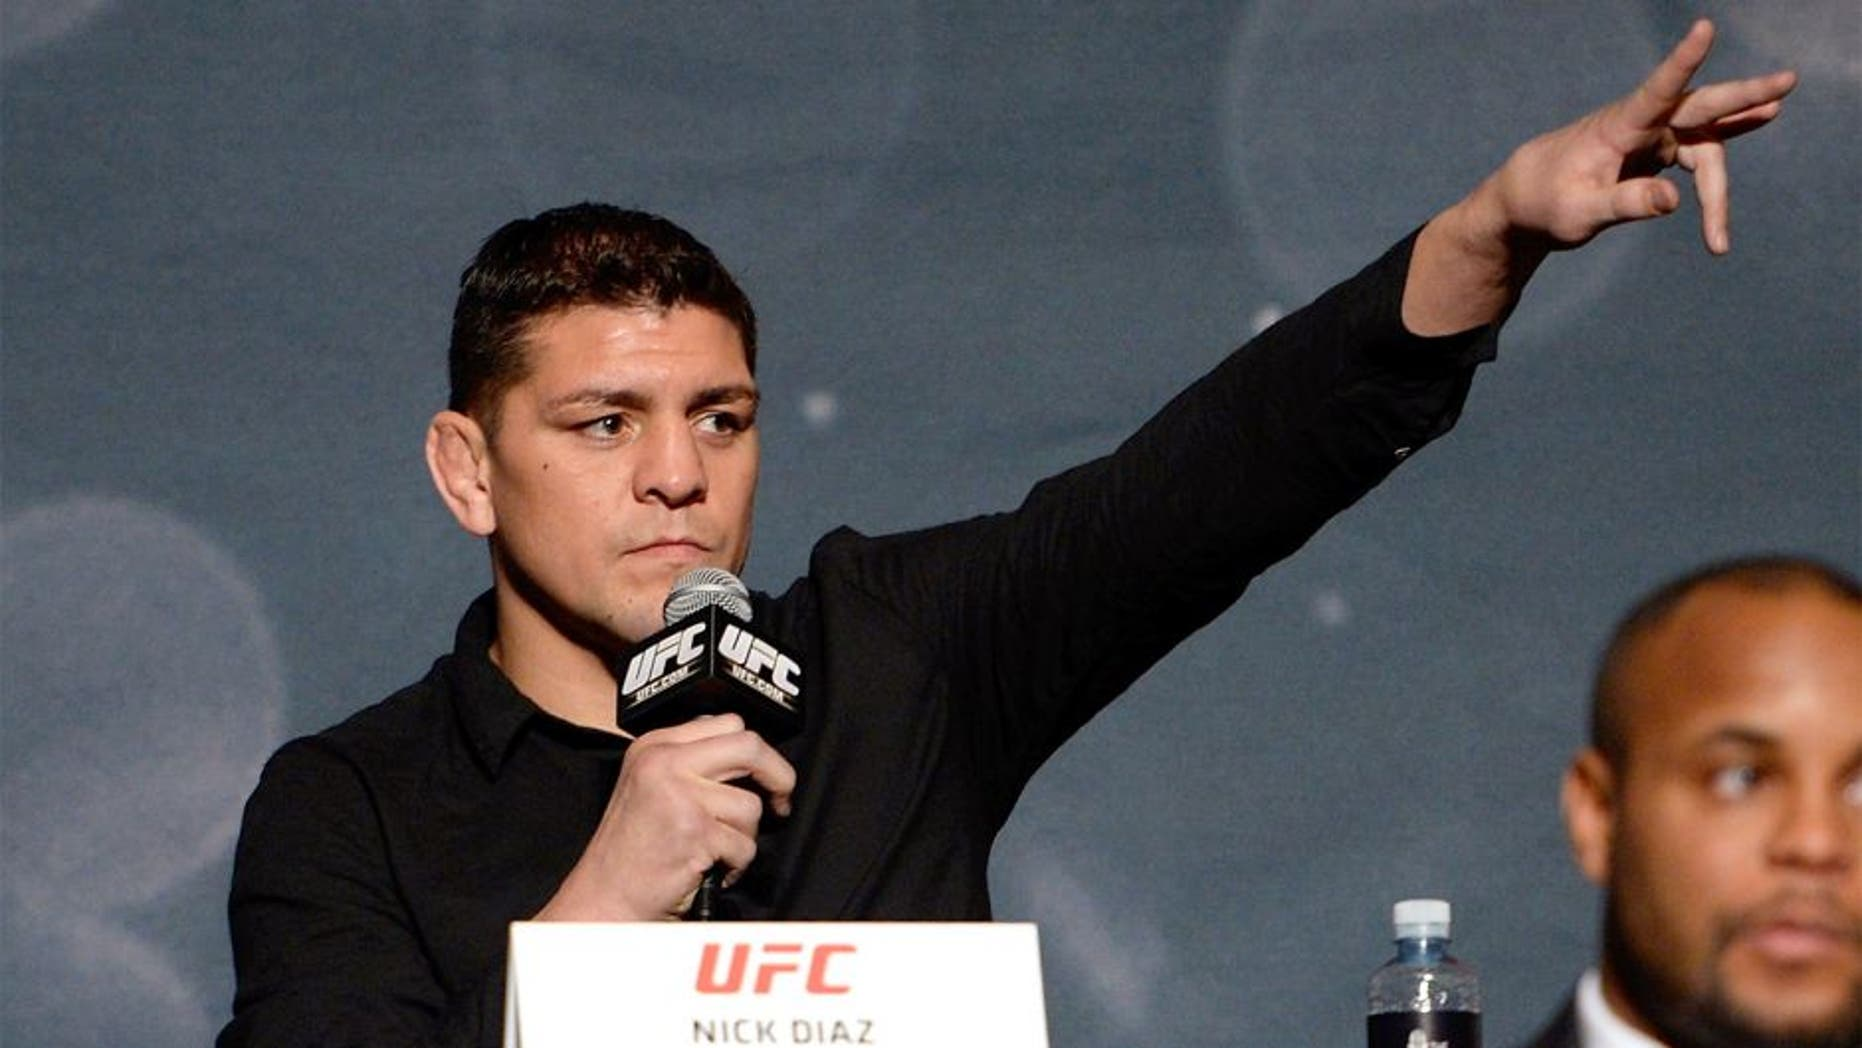 LAS VEGAS, NEVADA - NOVEMBER 17: UFC middleweight Nick Diaz interacts with the crowd during the UFC Time Is Now press conference at The Smith Center for the Performing Arts on November 17, 2014 in Las Vegas, Nevada. (Photo by Jeff Bottari/Zuffa LLC/Zuffa LLC via Getty Images)